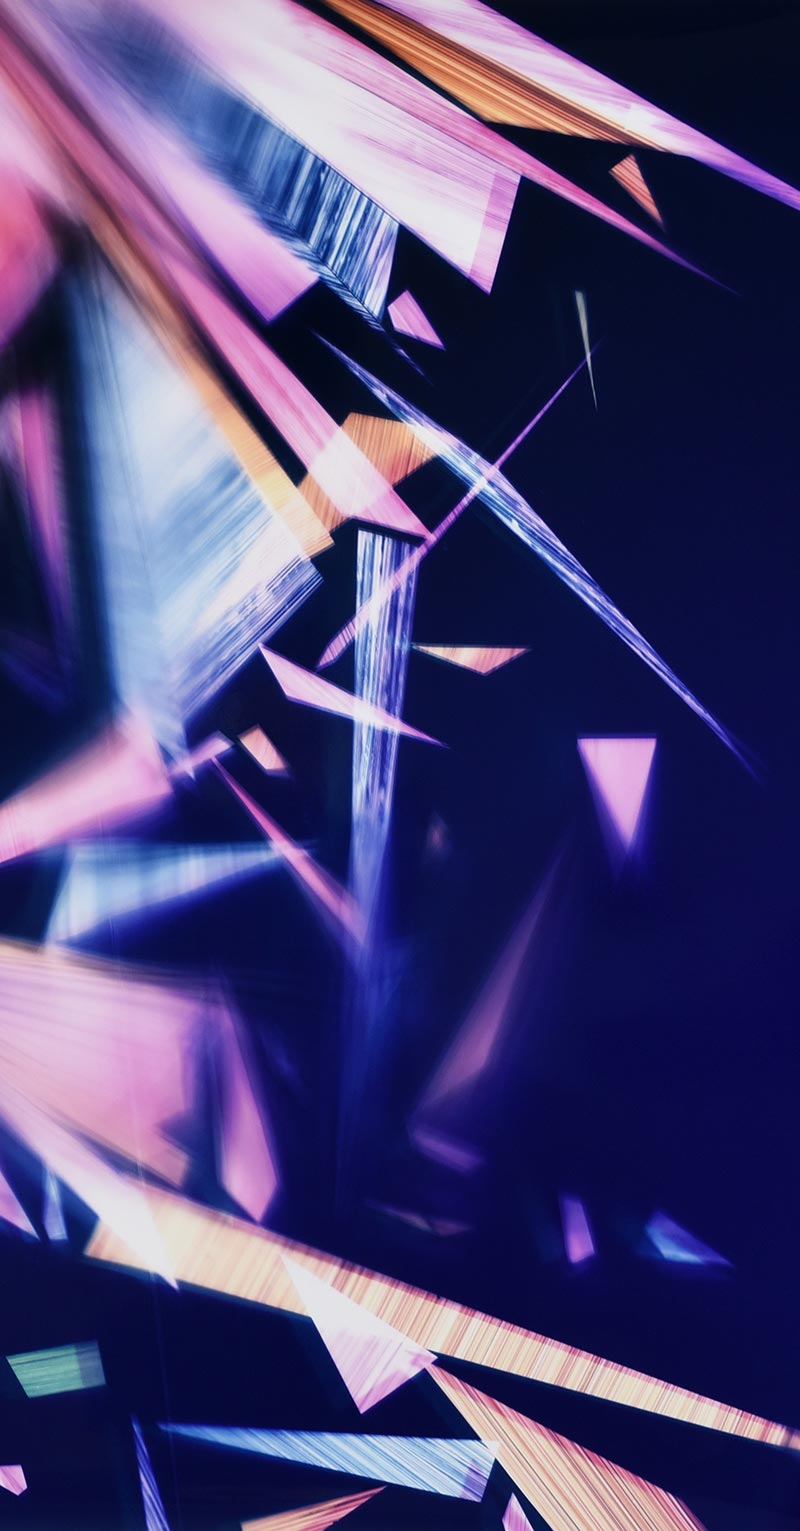 close up detail of color photogram titled: Paragon En Masse